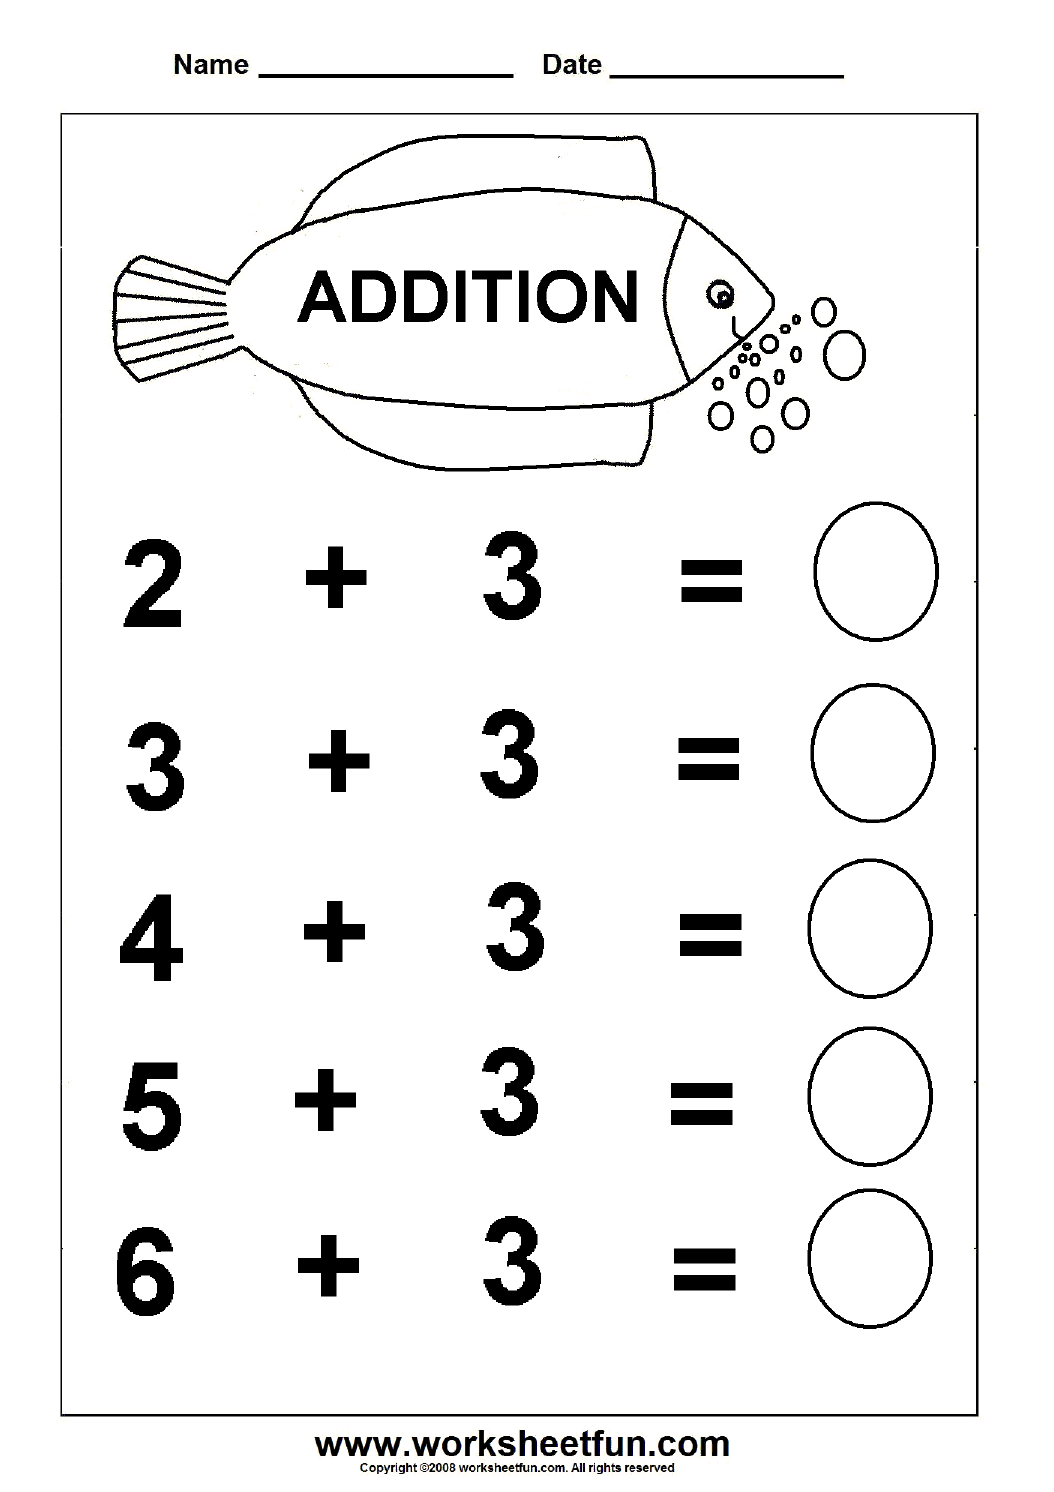 Worksheets Additions Worksheets addition 6 worksheets printable pinterest worksheets